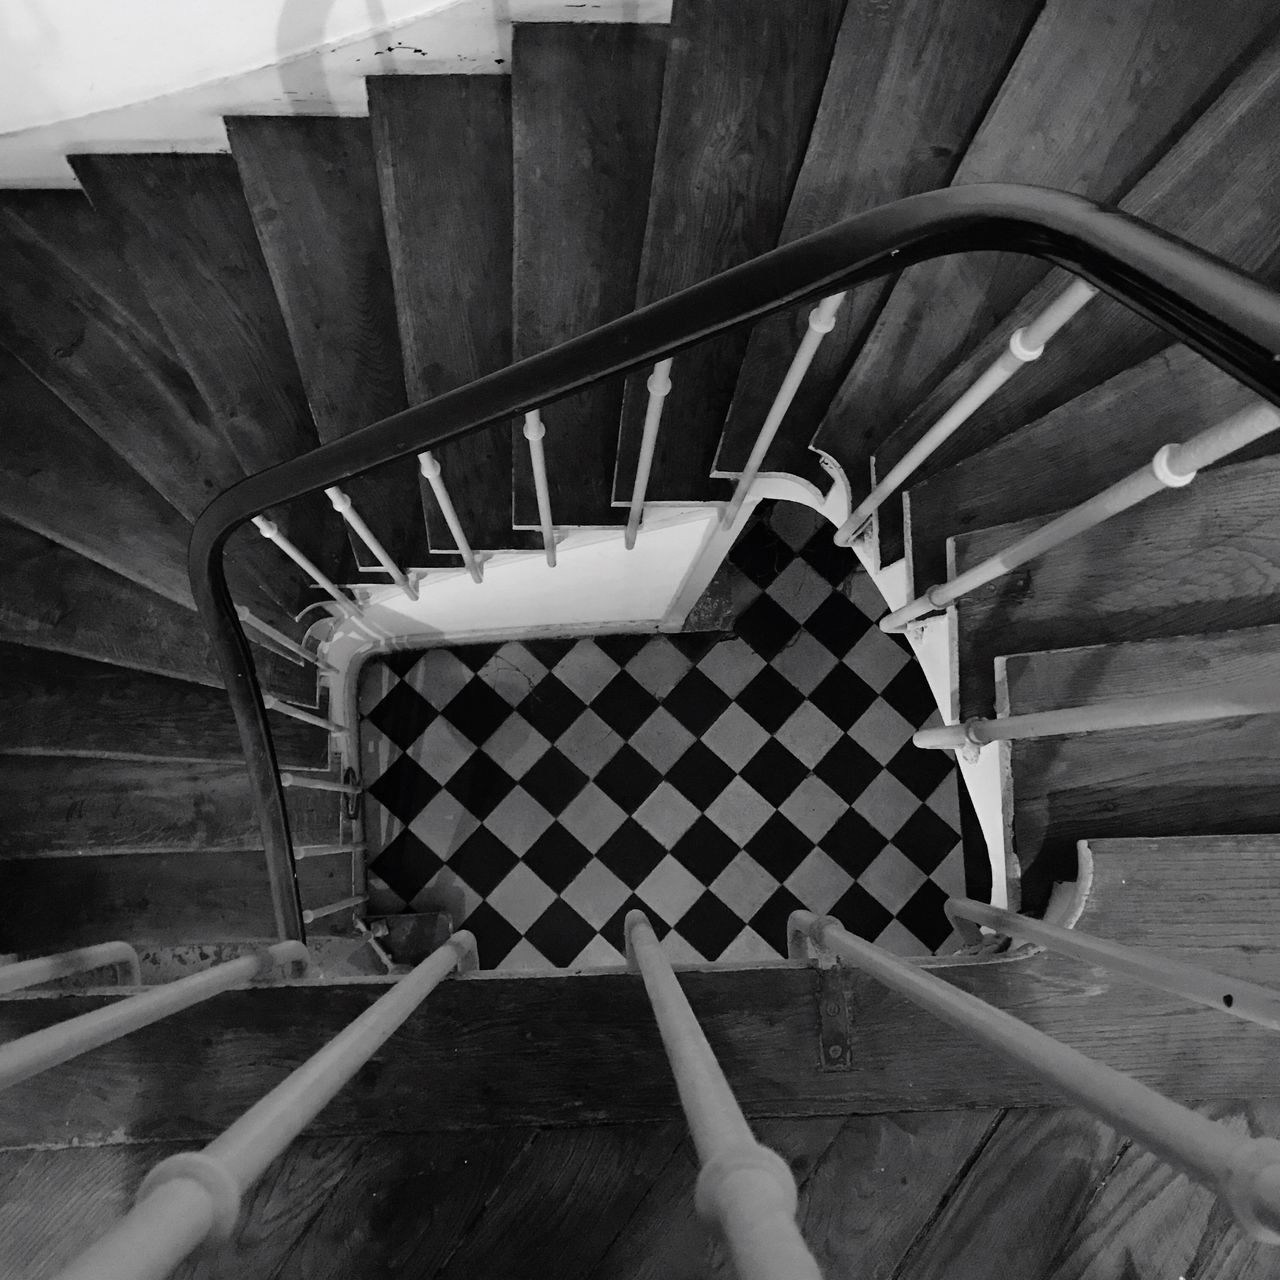 Staircase in Paris - Railing Staircase Steps And Staircases Steps High Angle View Spiral Built Structure Spiral Staircase Blackandwhite Architecture Low Section Stairs Spiral Stairs Human Leg Indoors  One Person Close-up Day People Pattern Chessboard Pattern Steps Upanddown